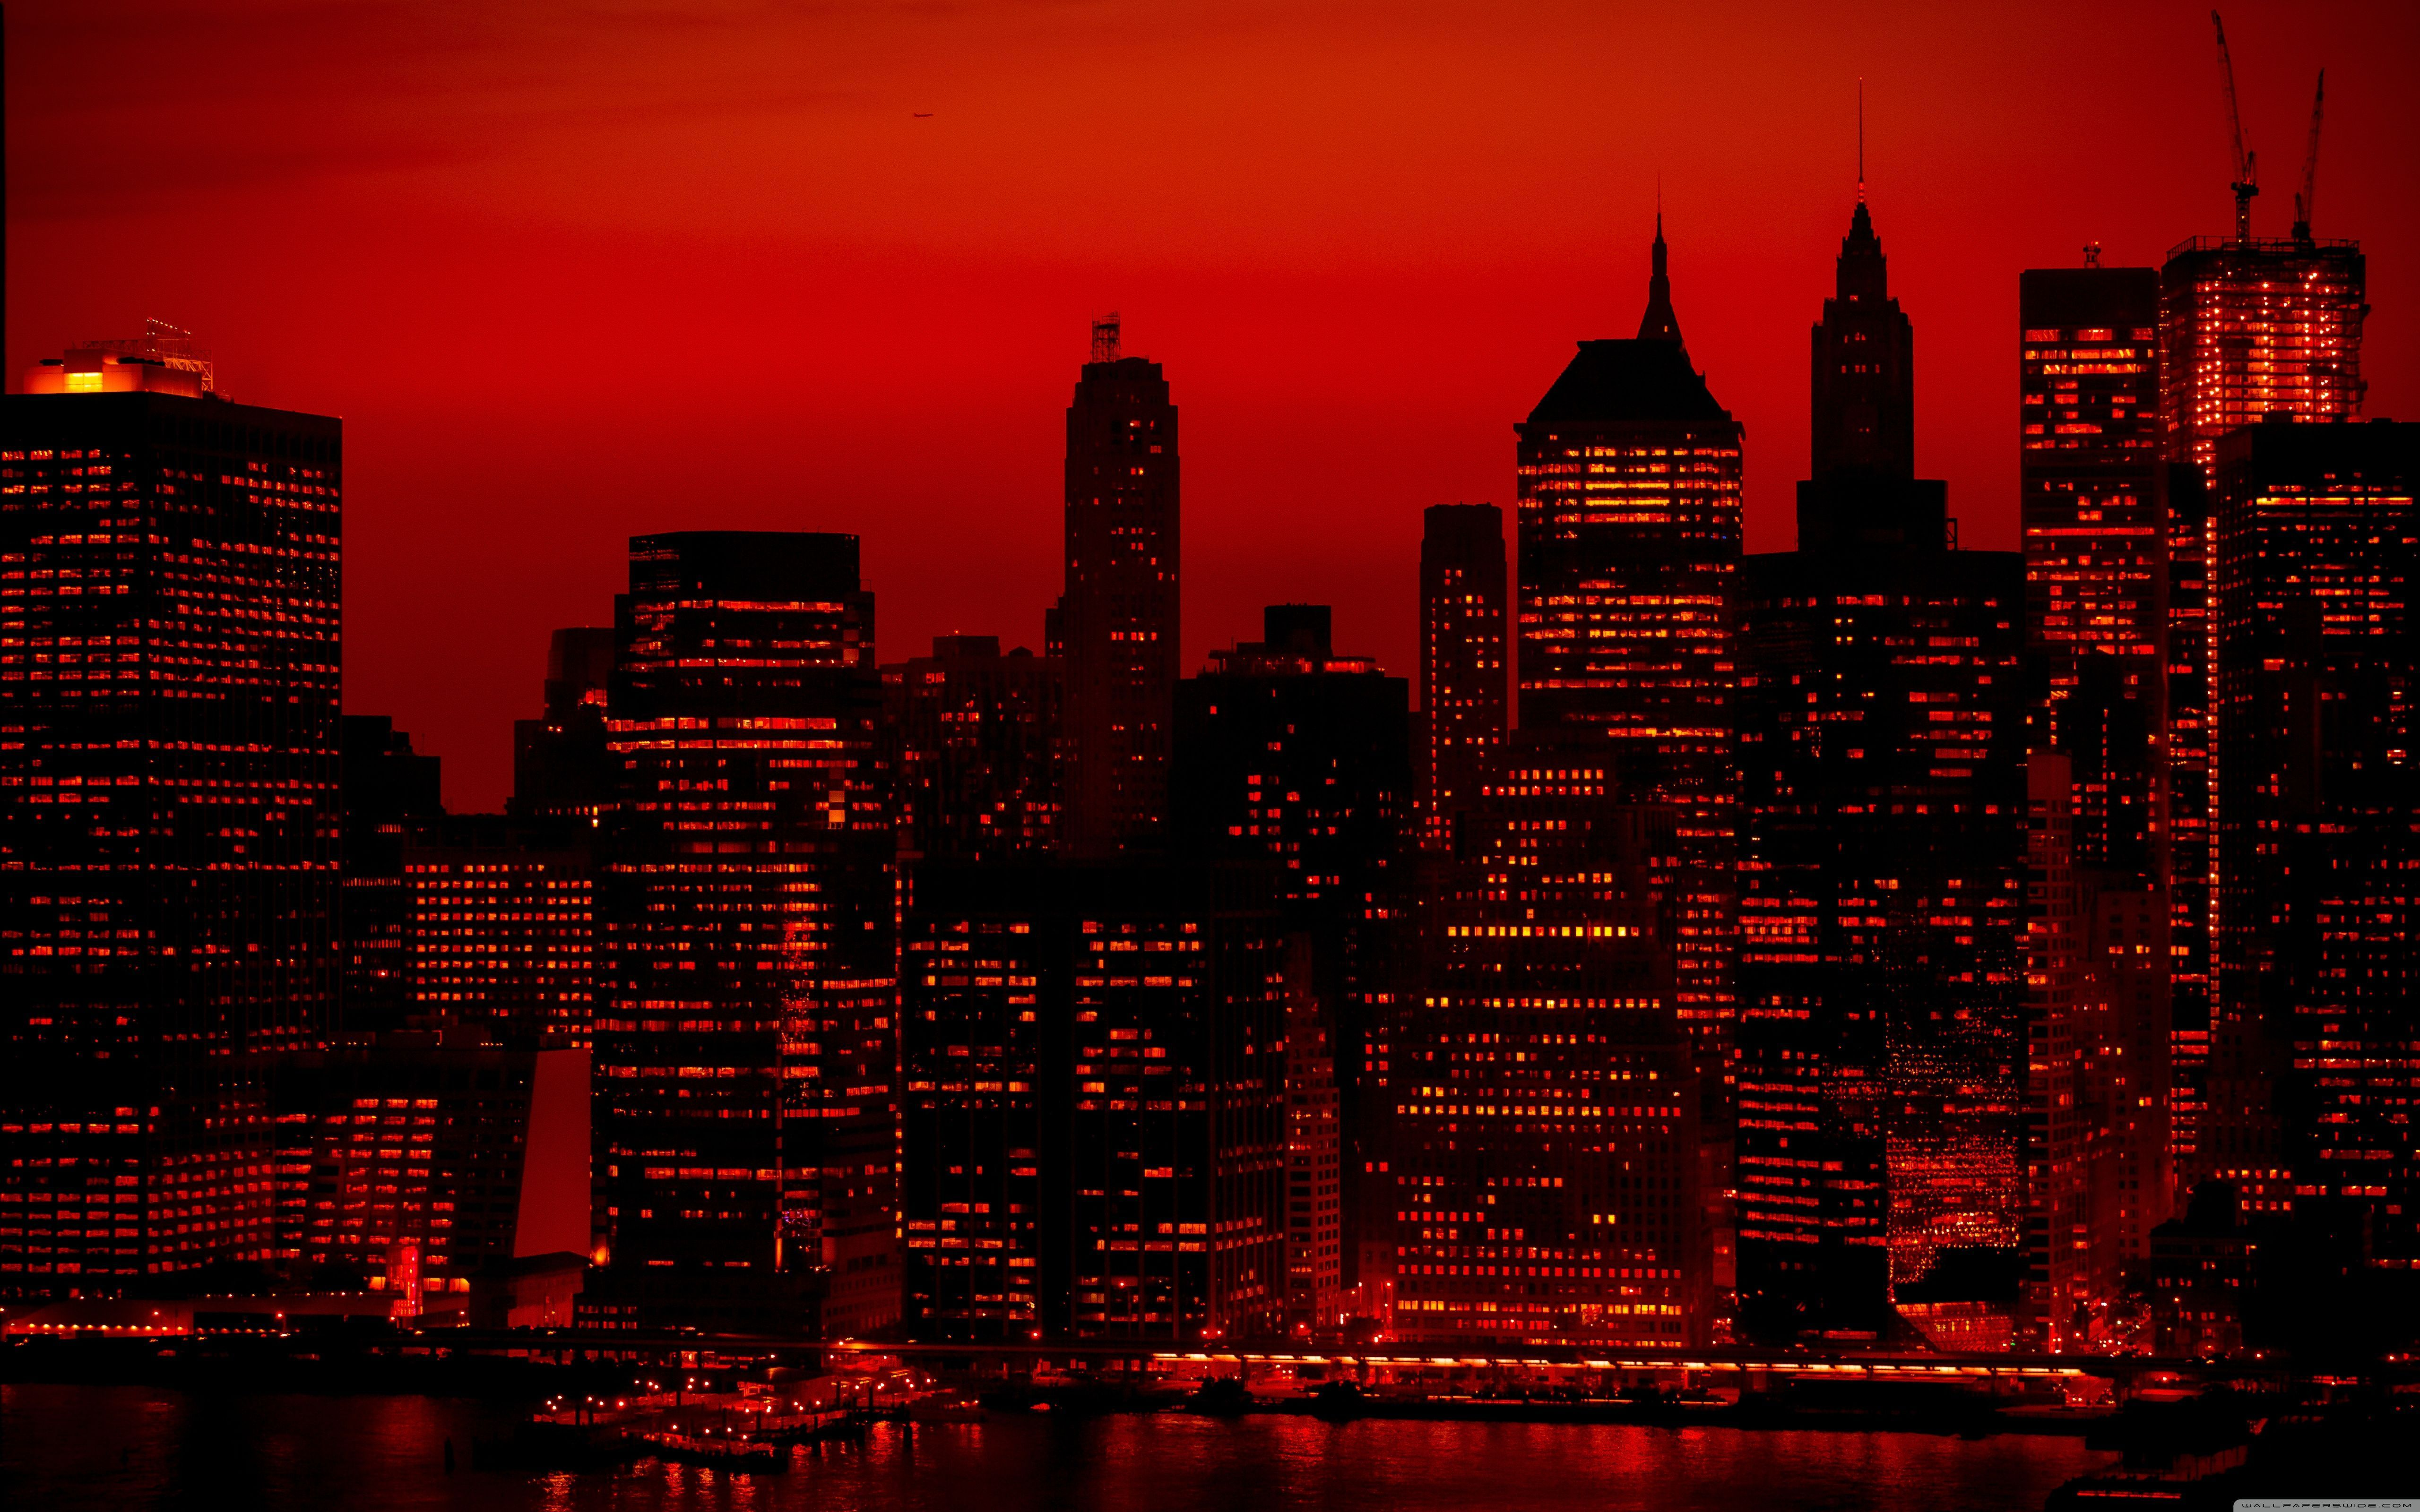 Download Red Sky Wallpapers High Resolution For Free Wallpaper Monodomo City Wallpaper Red Sky Sky Aesthetic